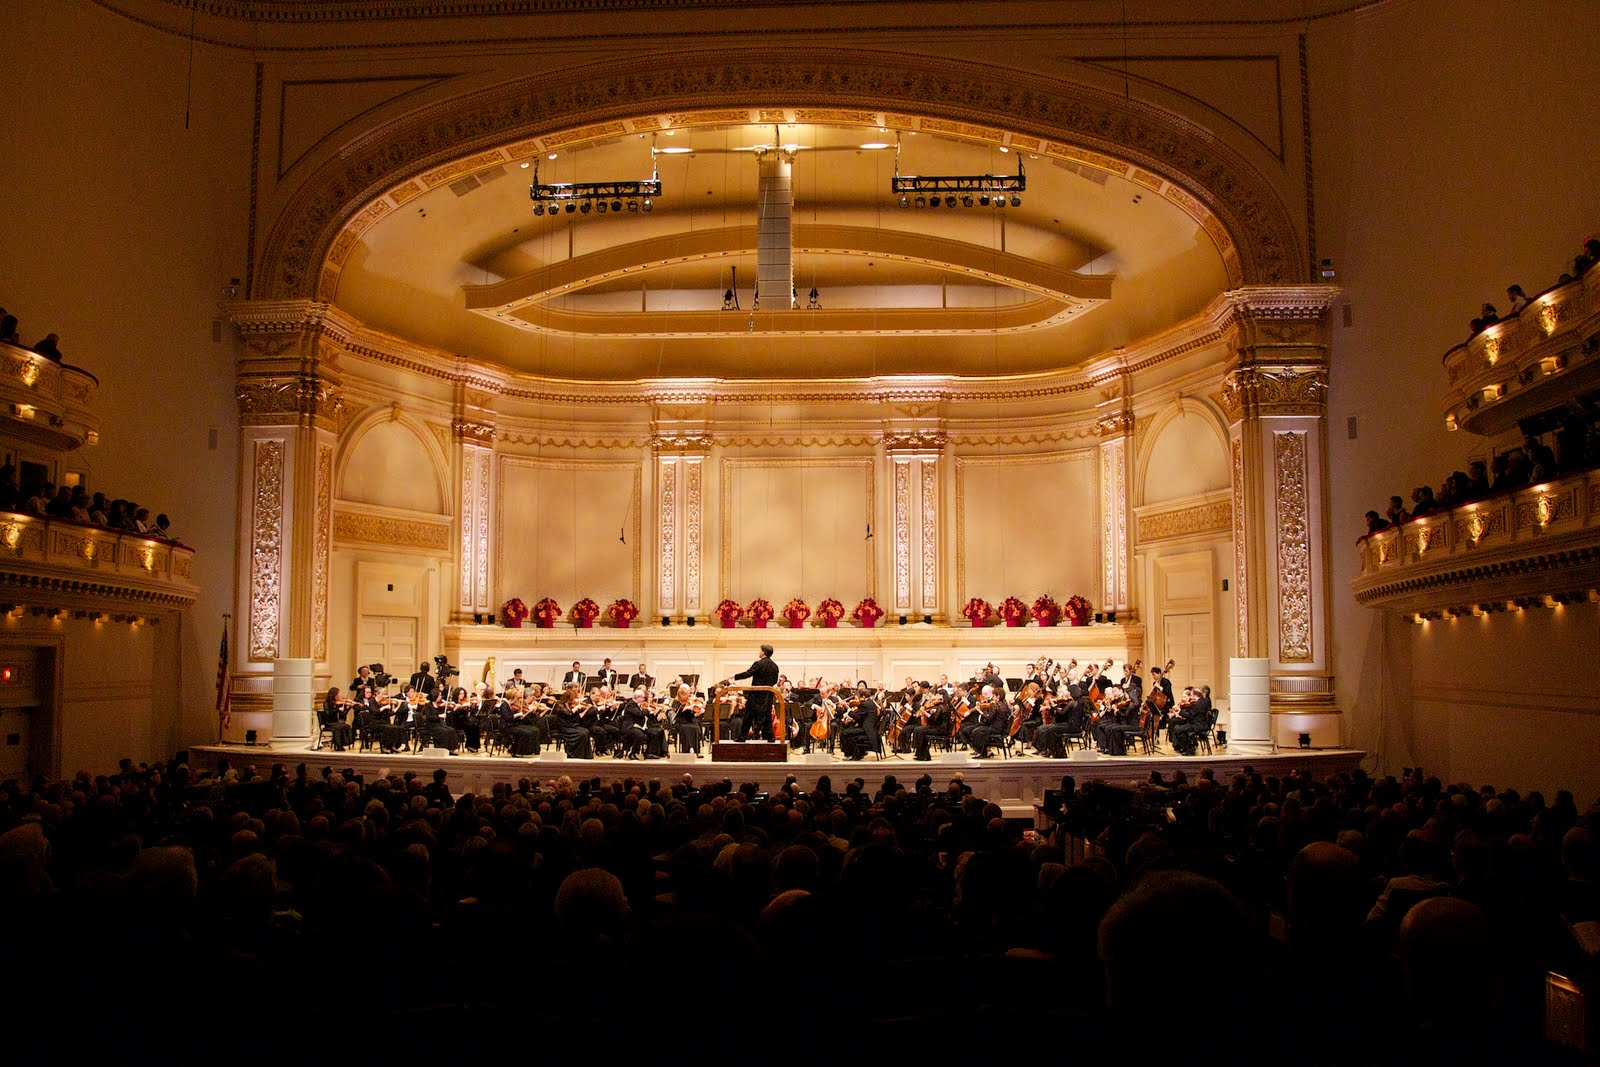 carnegie hall Buy carnegie hall tickets at ticketmastercom find carnegie hall venue concert and event schedules, venue information, directions, and seating charts.